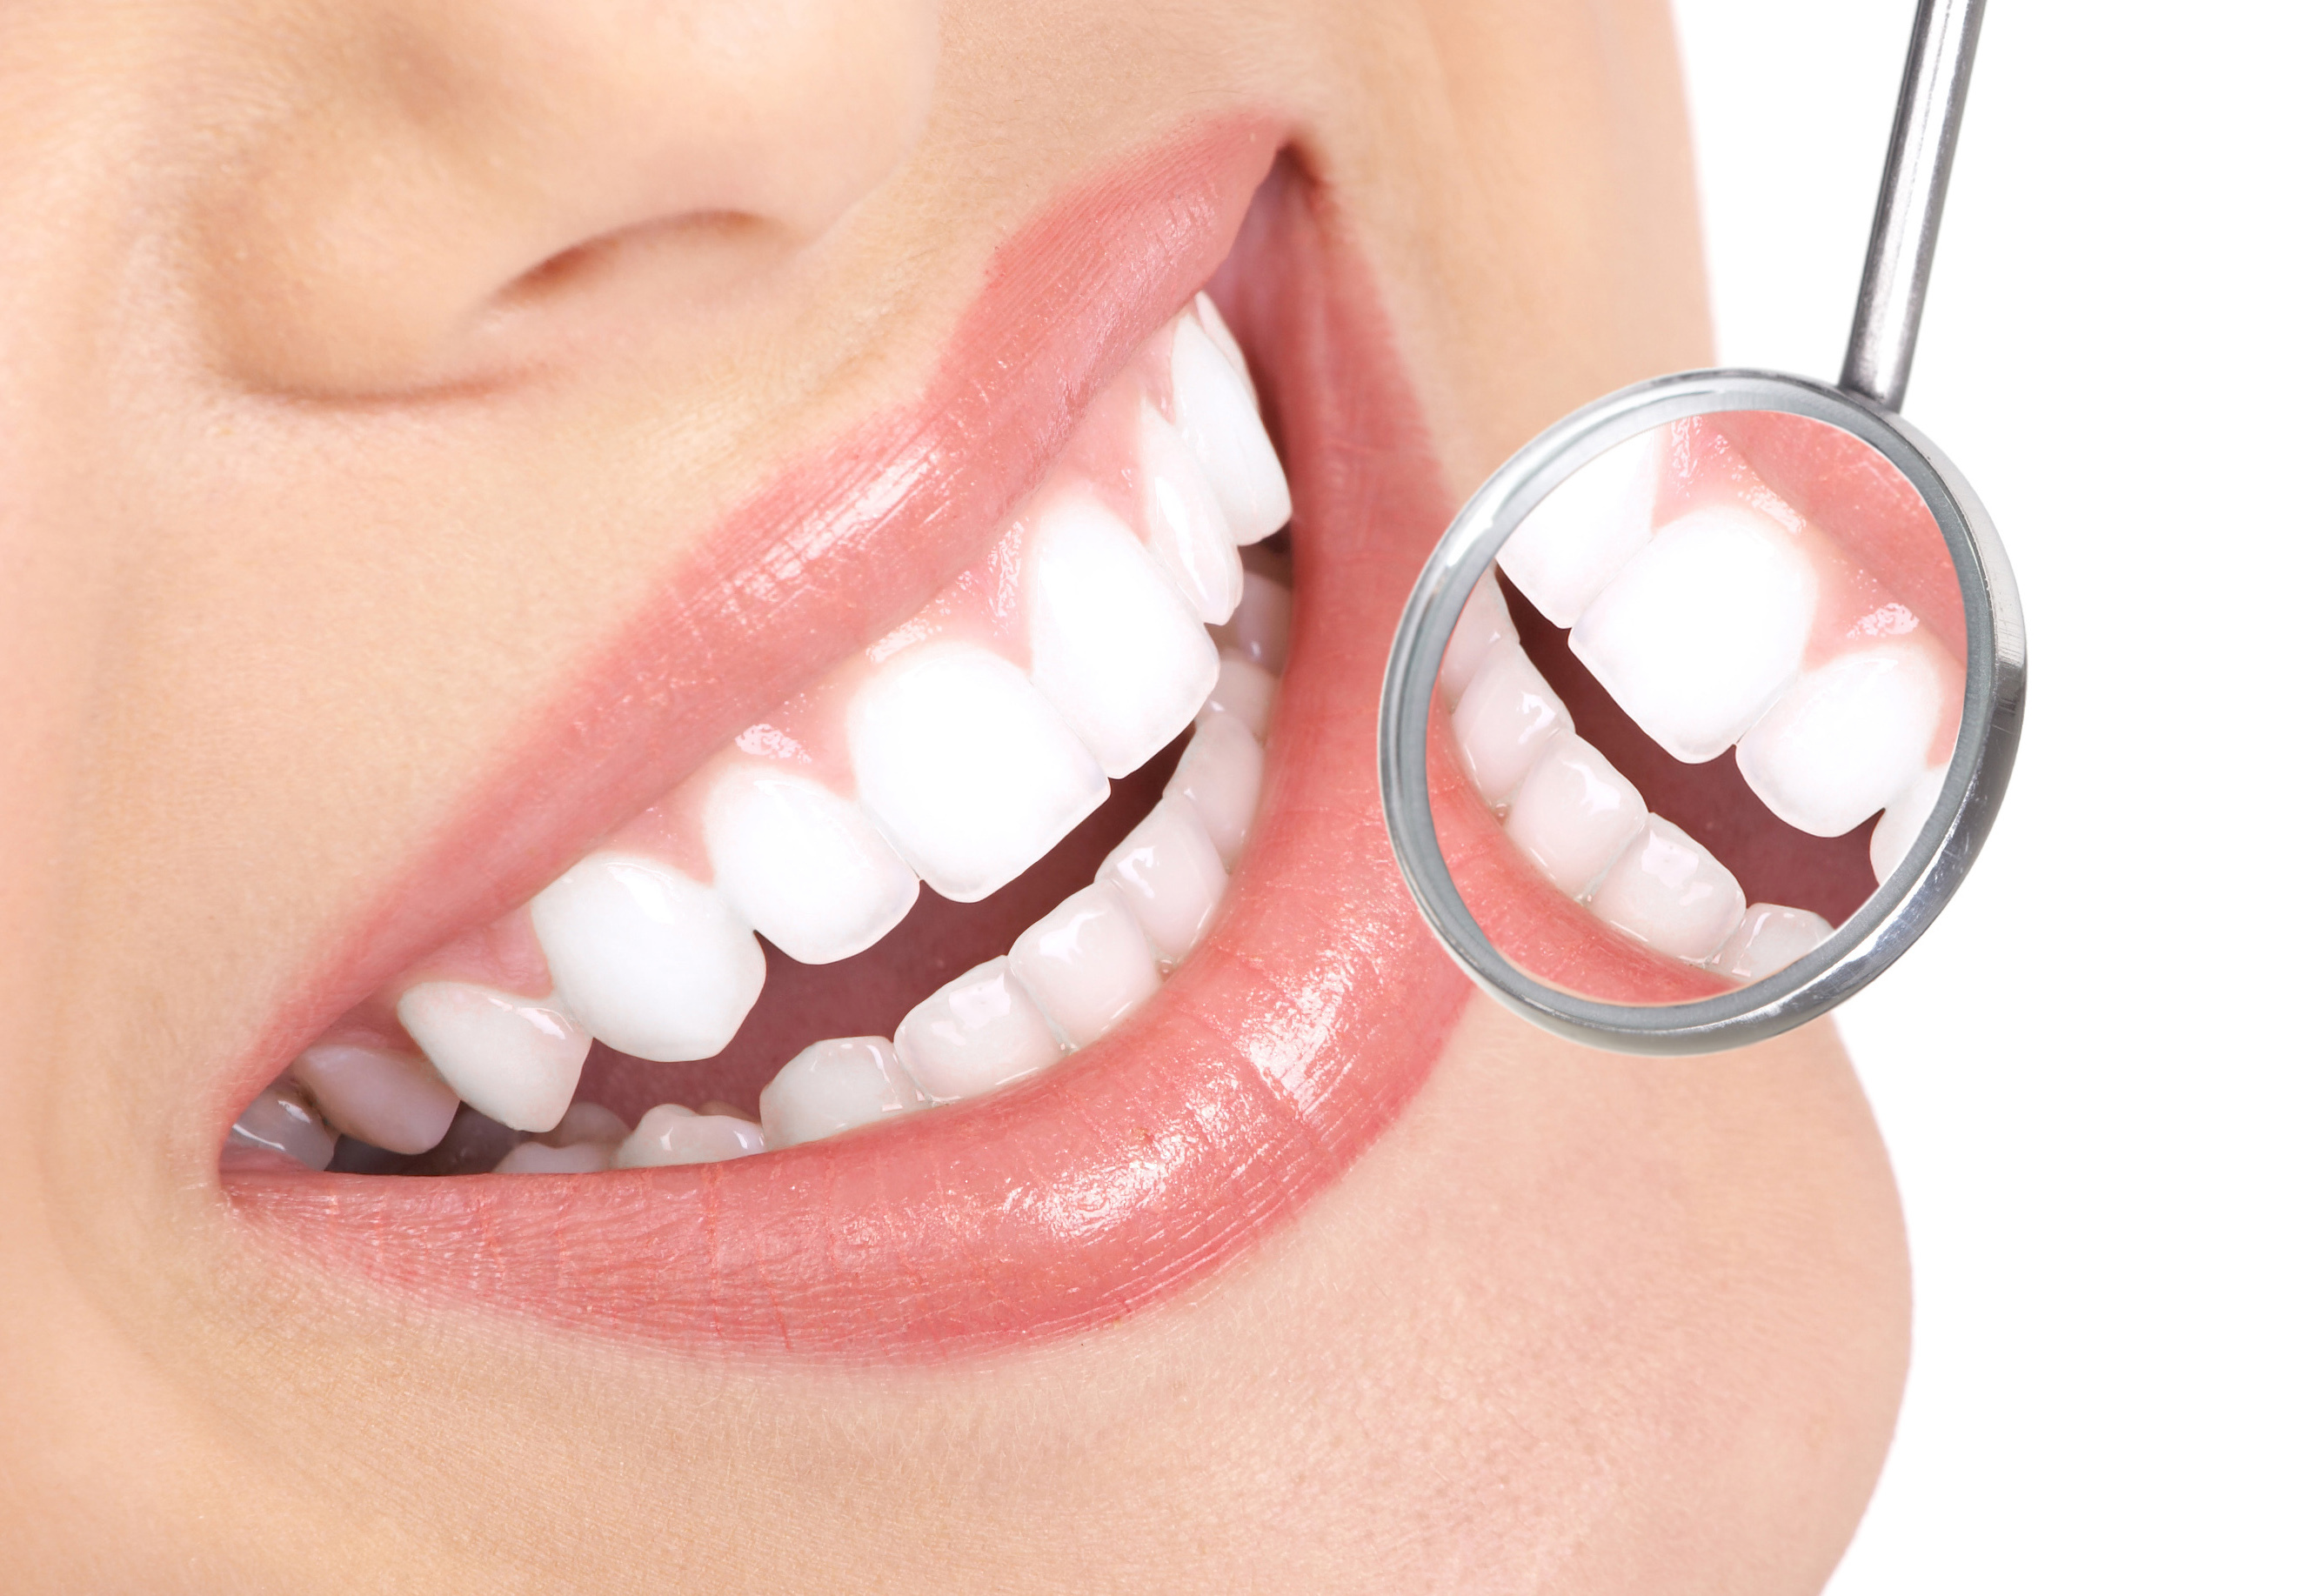 Cost-Effective and Economical Dental Payment Plans To Resolve All Dental Issues